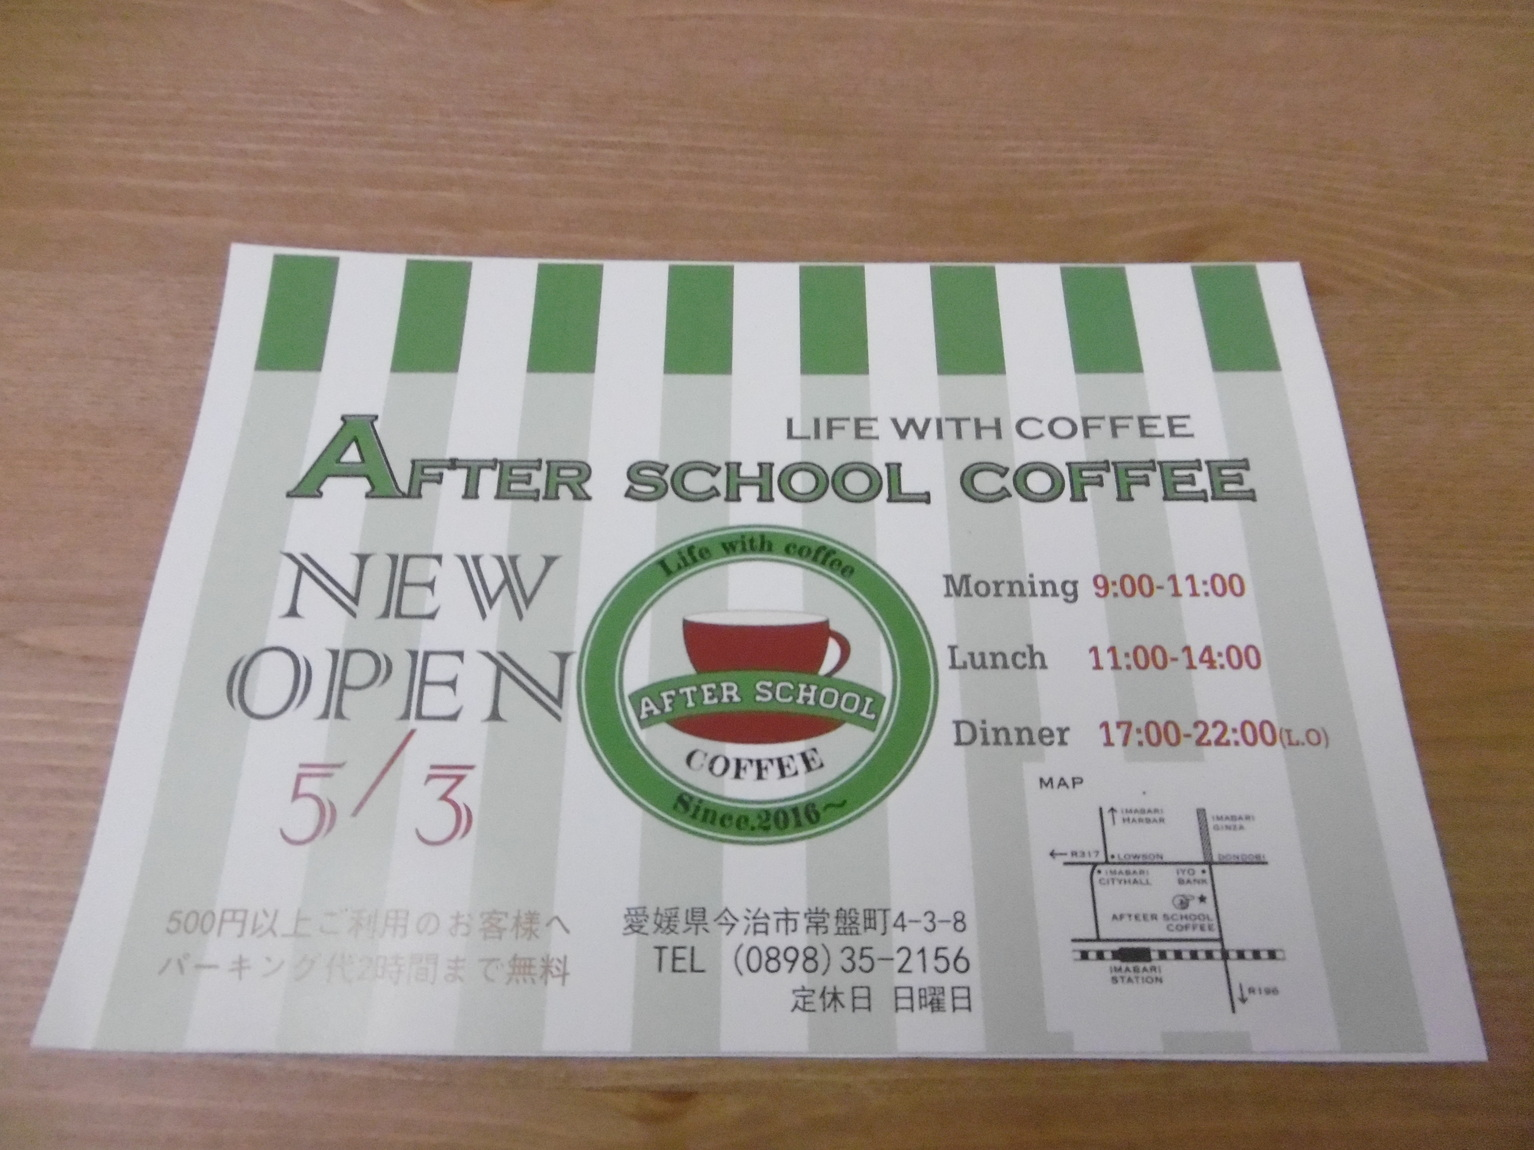 AFTER SCHOOL COFFEE